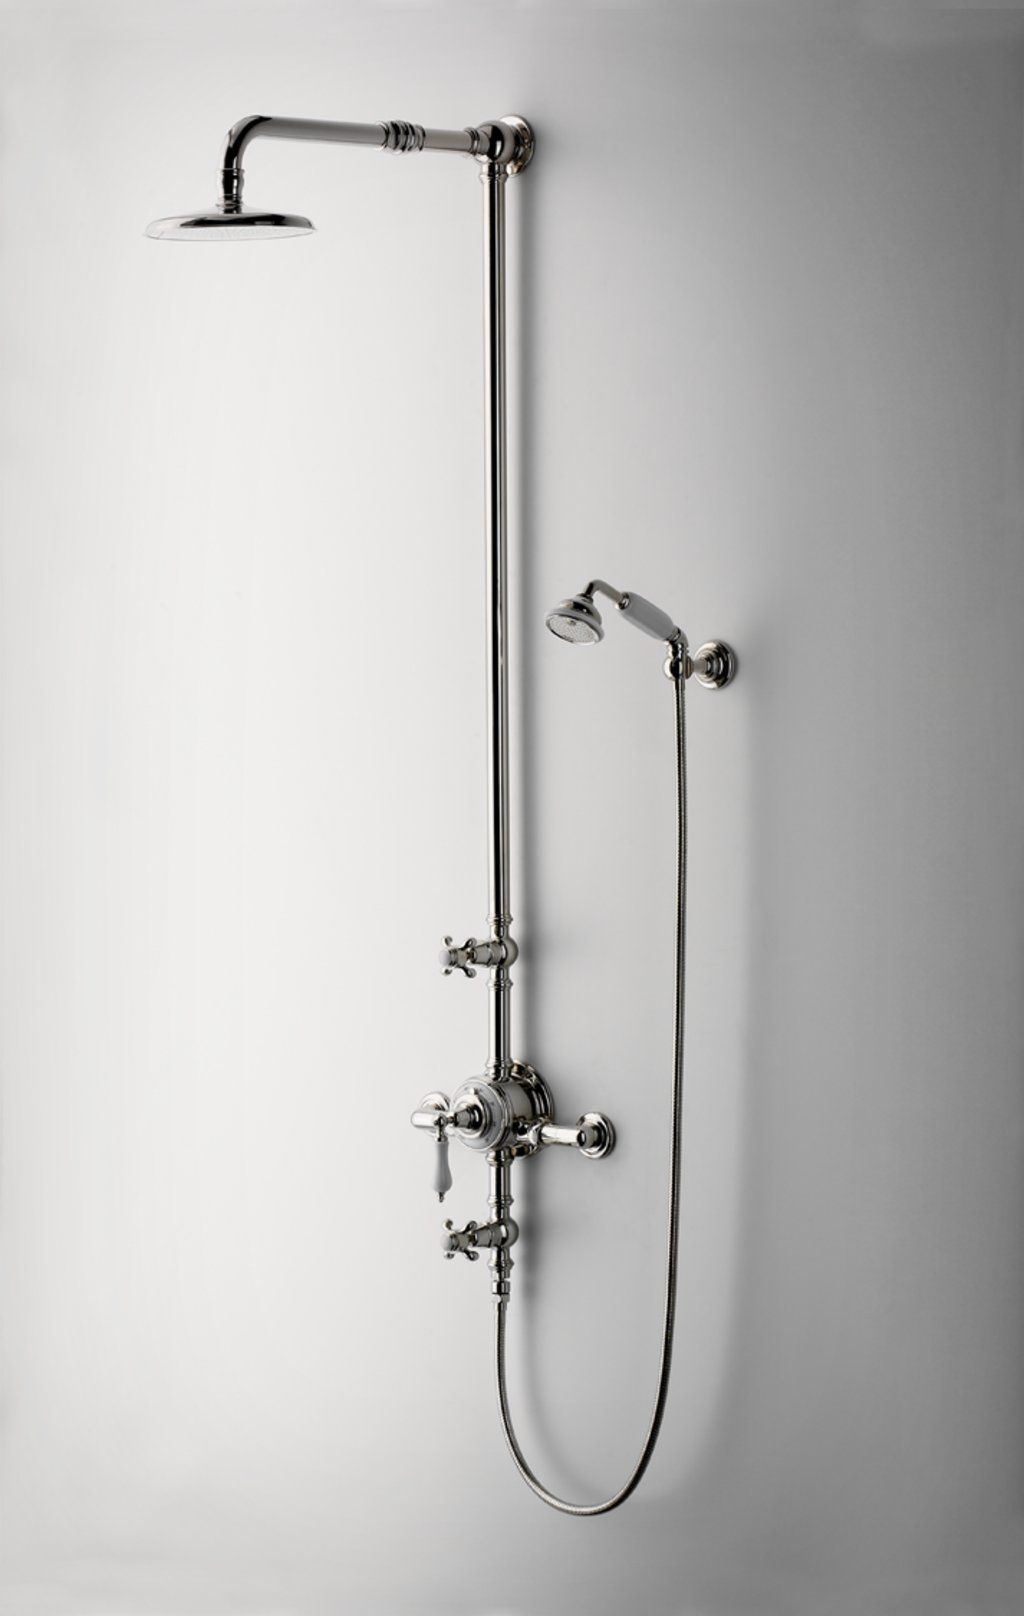 Etoile Exposed Thermostatic System with 8\